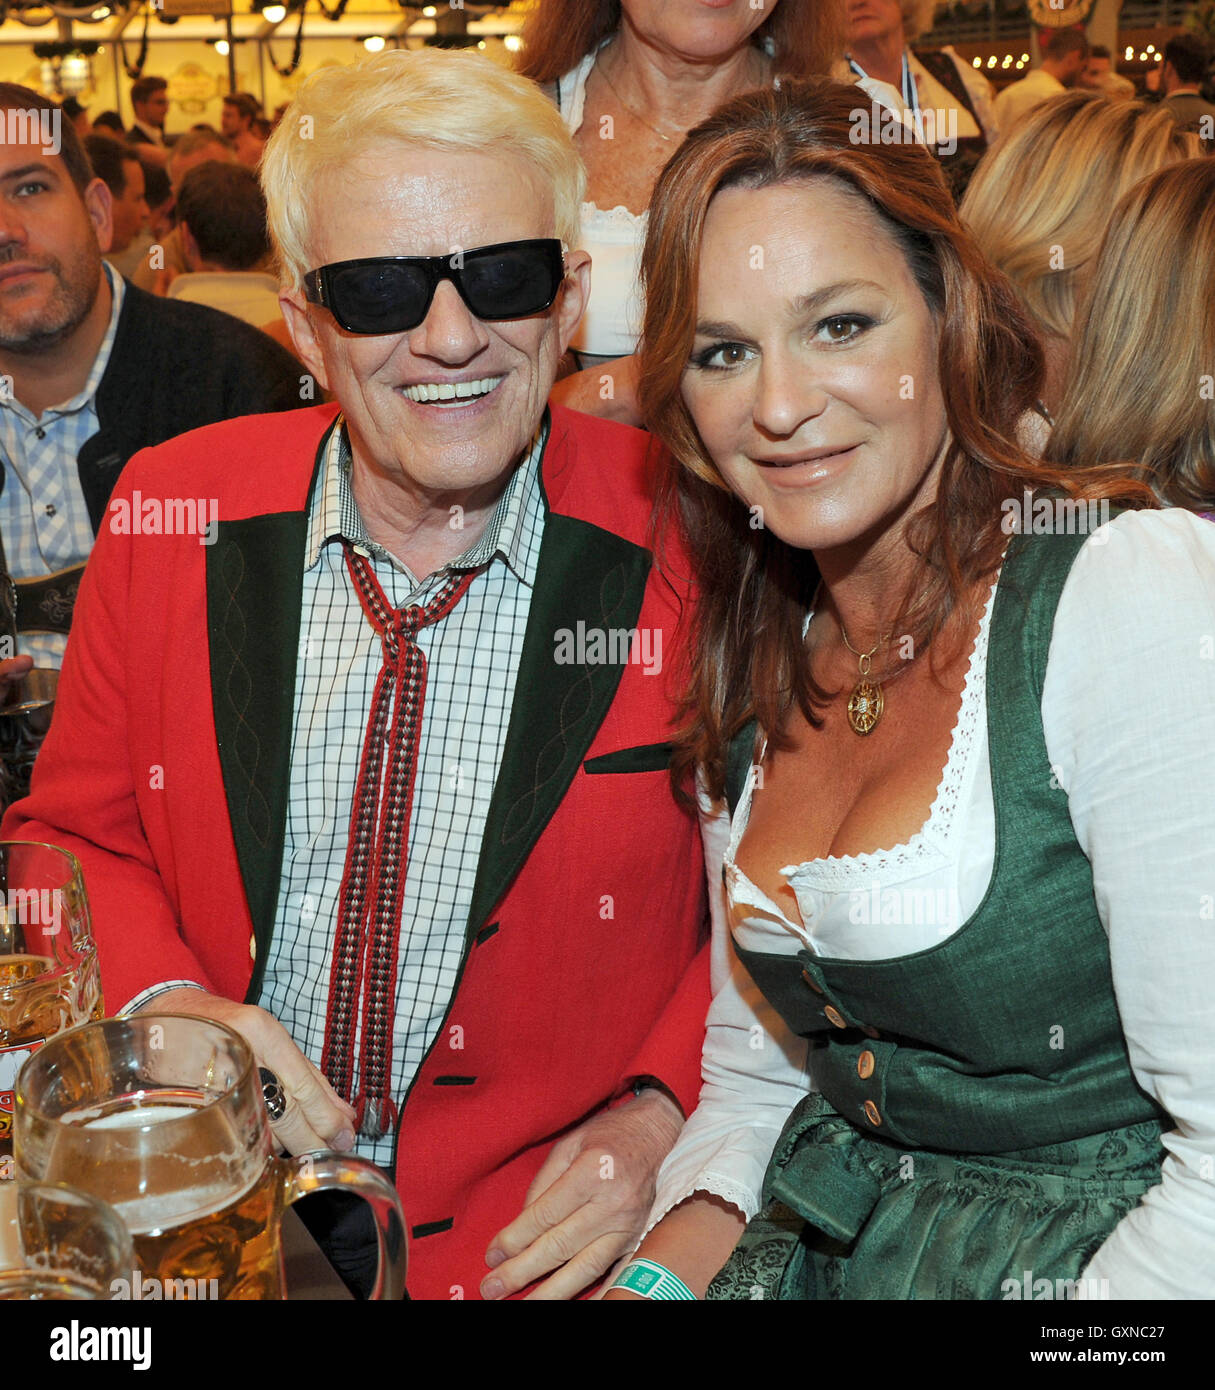 Andrea berg 2016 hd image free - 17th Sep 2016 Singer Andrea Berg And Heino Celebrate In The Schottenhamel Tent At The Start Of Oktoberfest In Munich Germany 17 September 2016